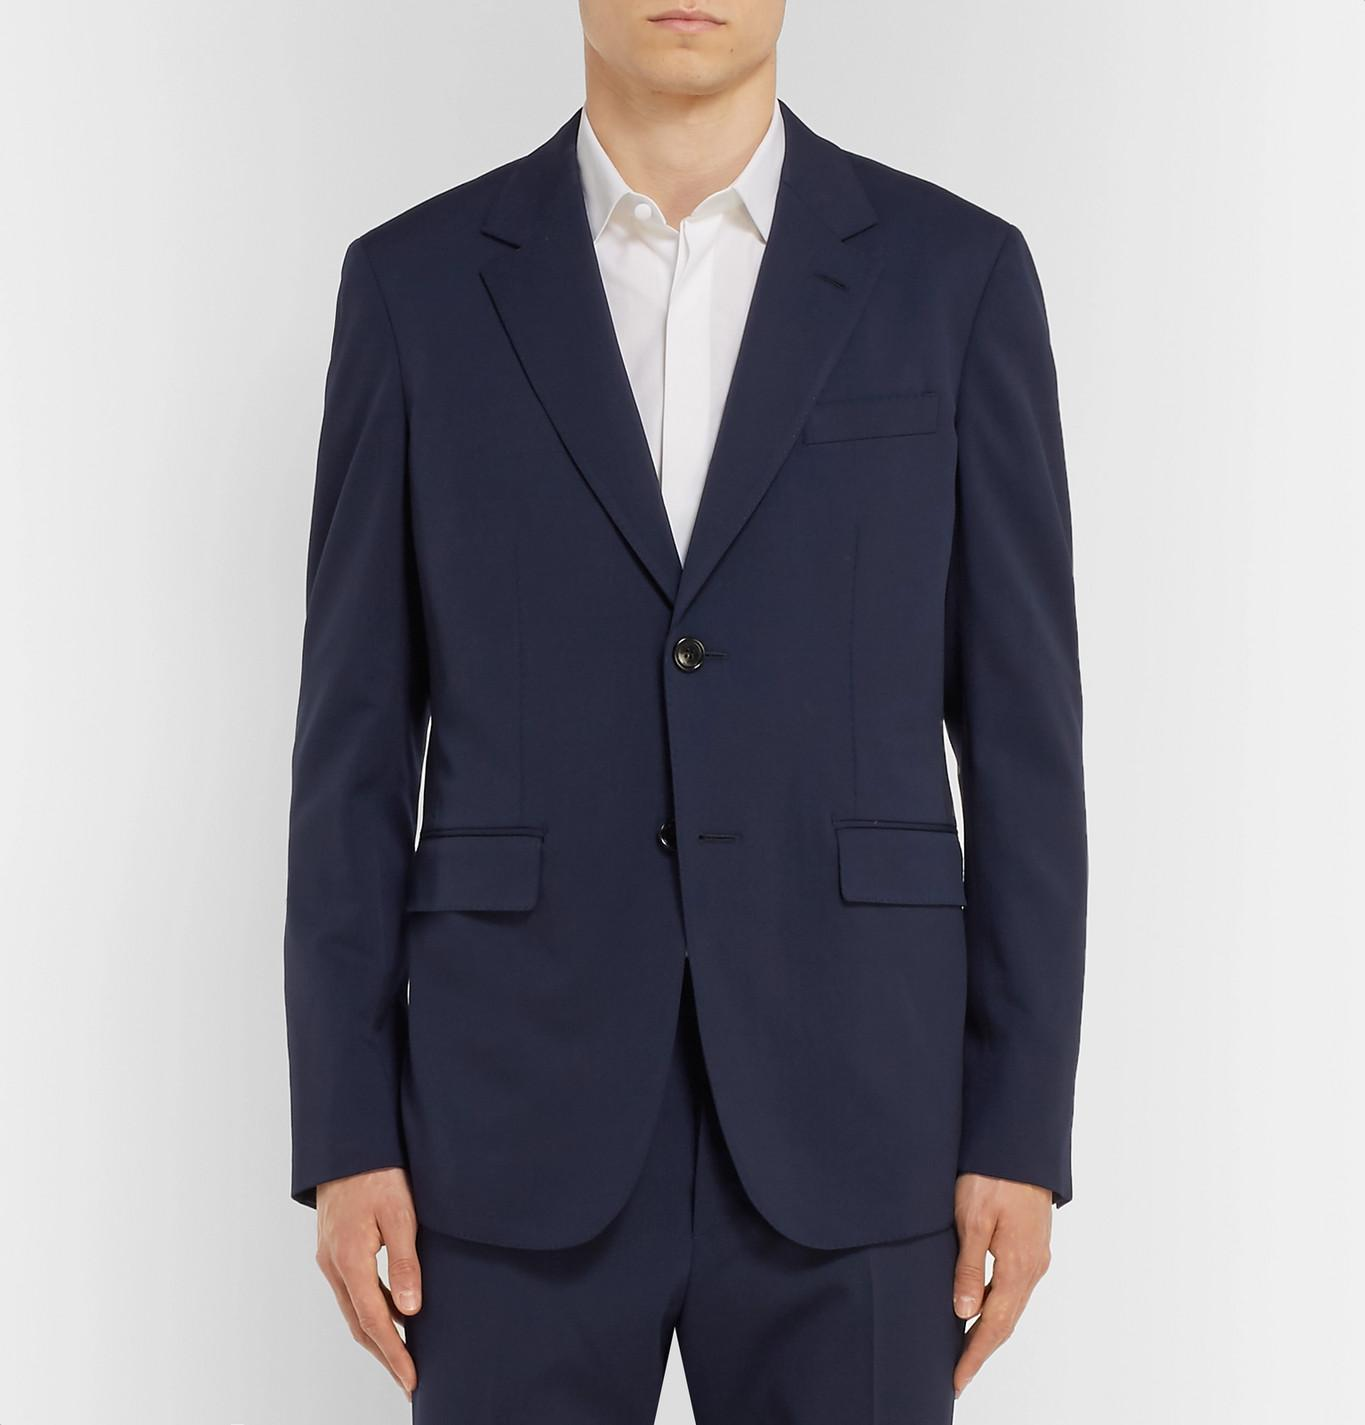 Berluti Navy Stretch-wool Twill Suit Jacket in Blue for Men